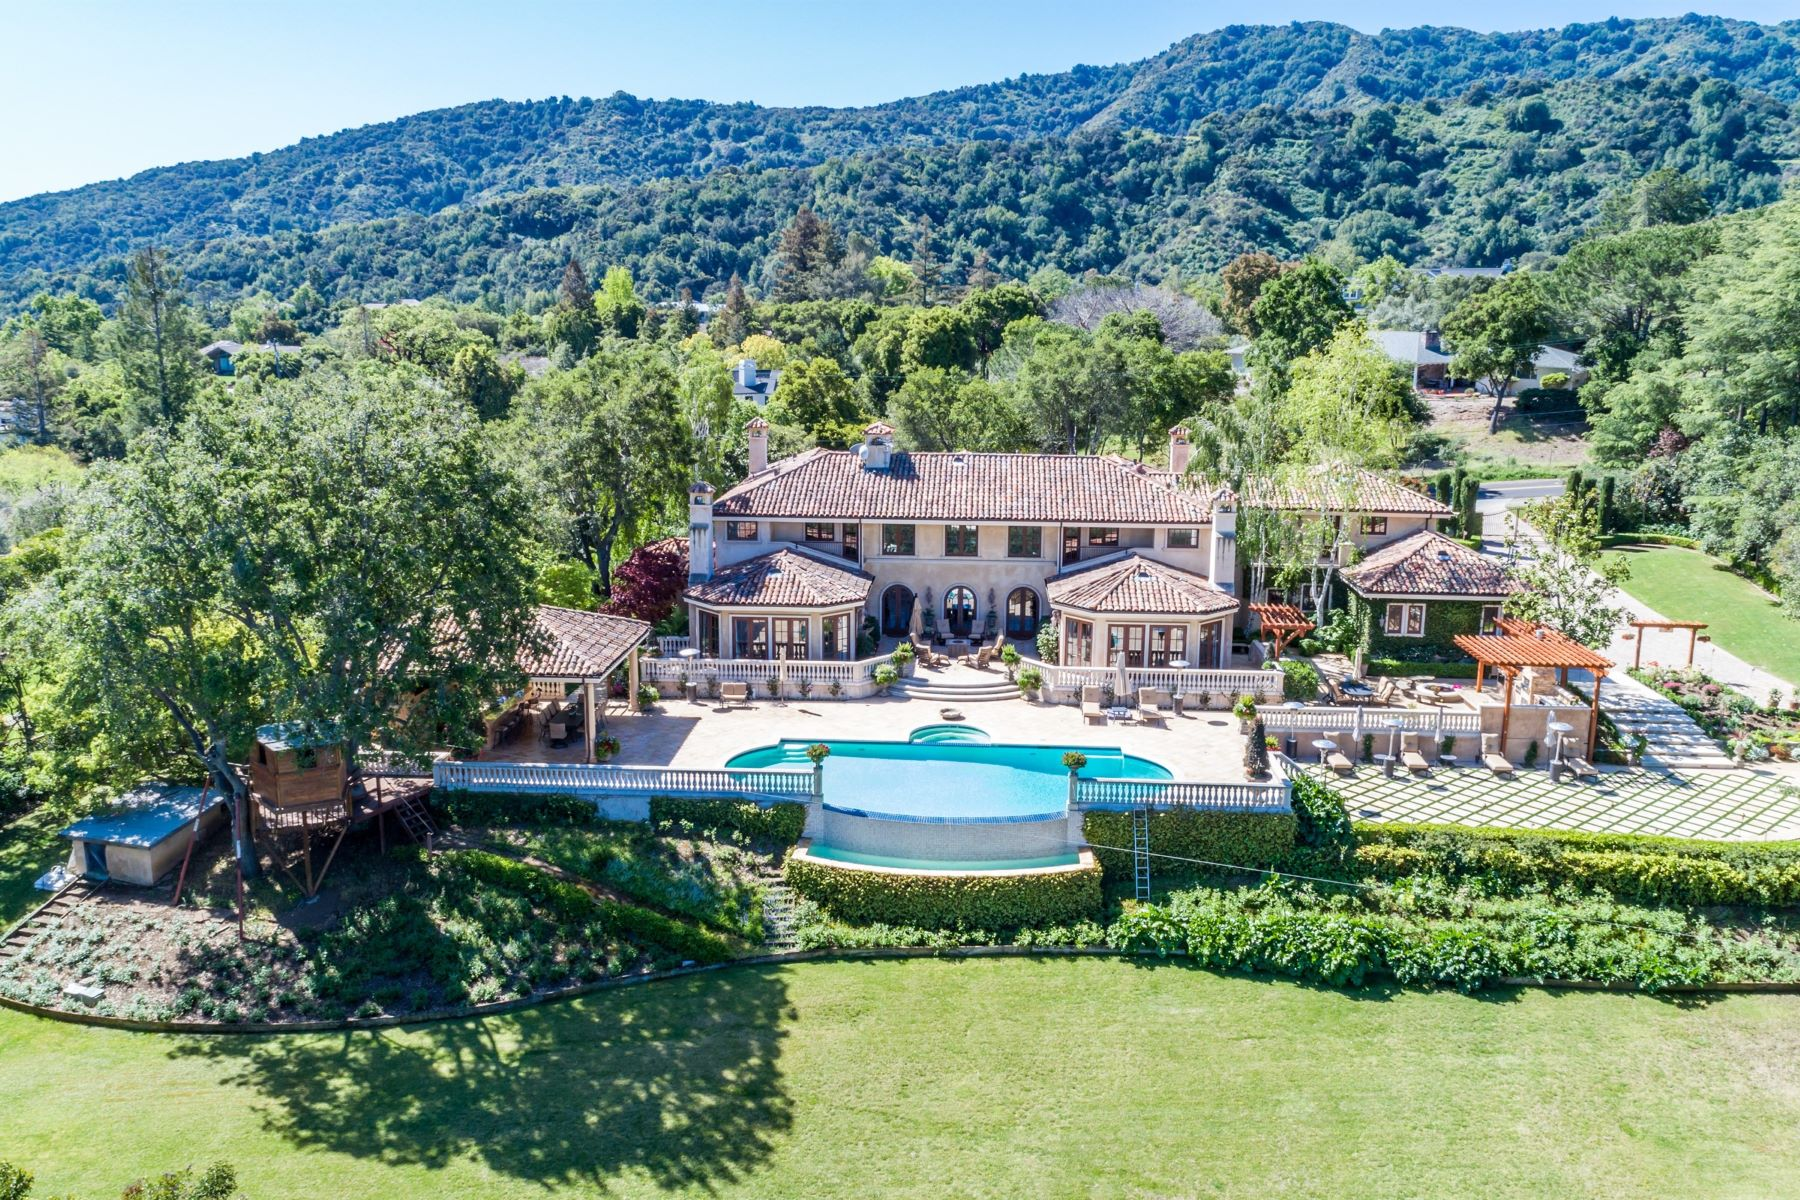 Single Family Homes for Sale at Grand Mediterranean Entertainer's Estate Bay Views, Entertainer's Estate Los Altos Hills, California 94024 United States